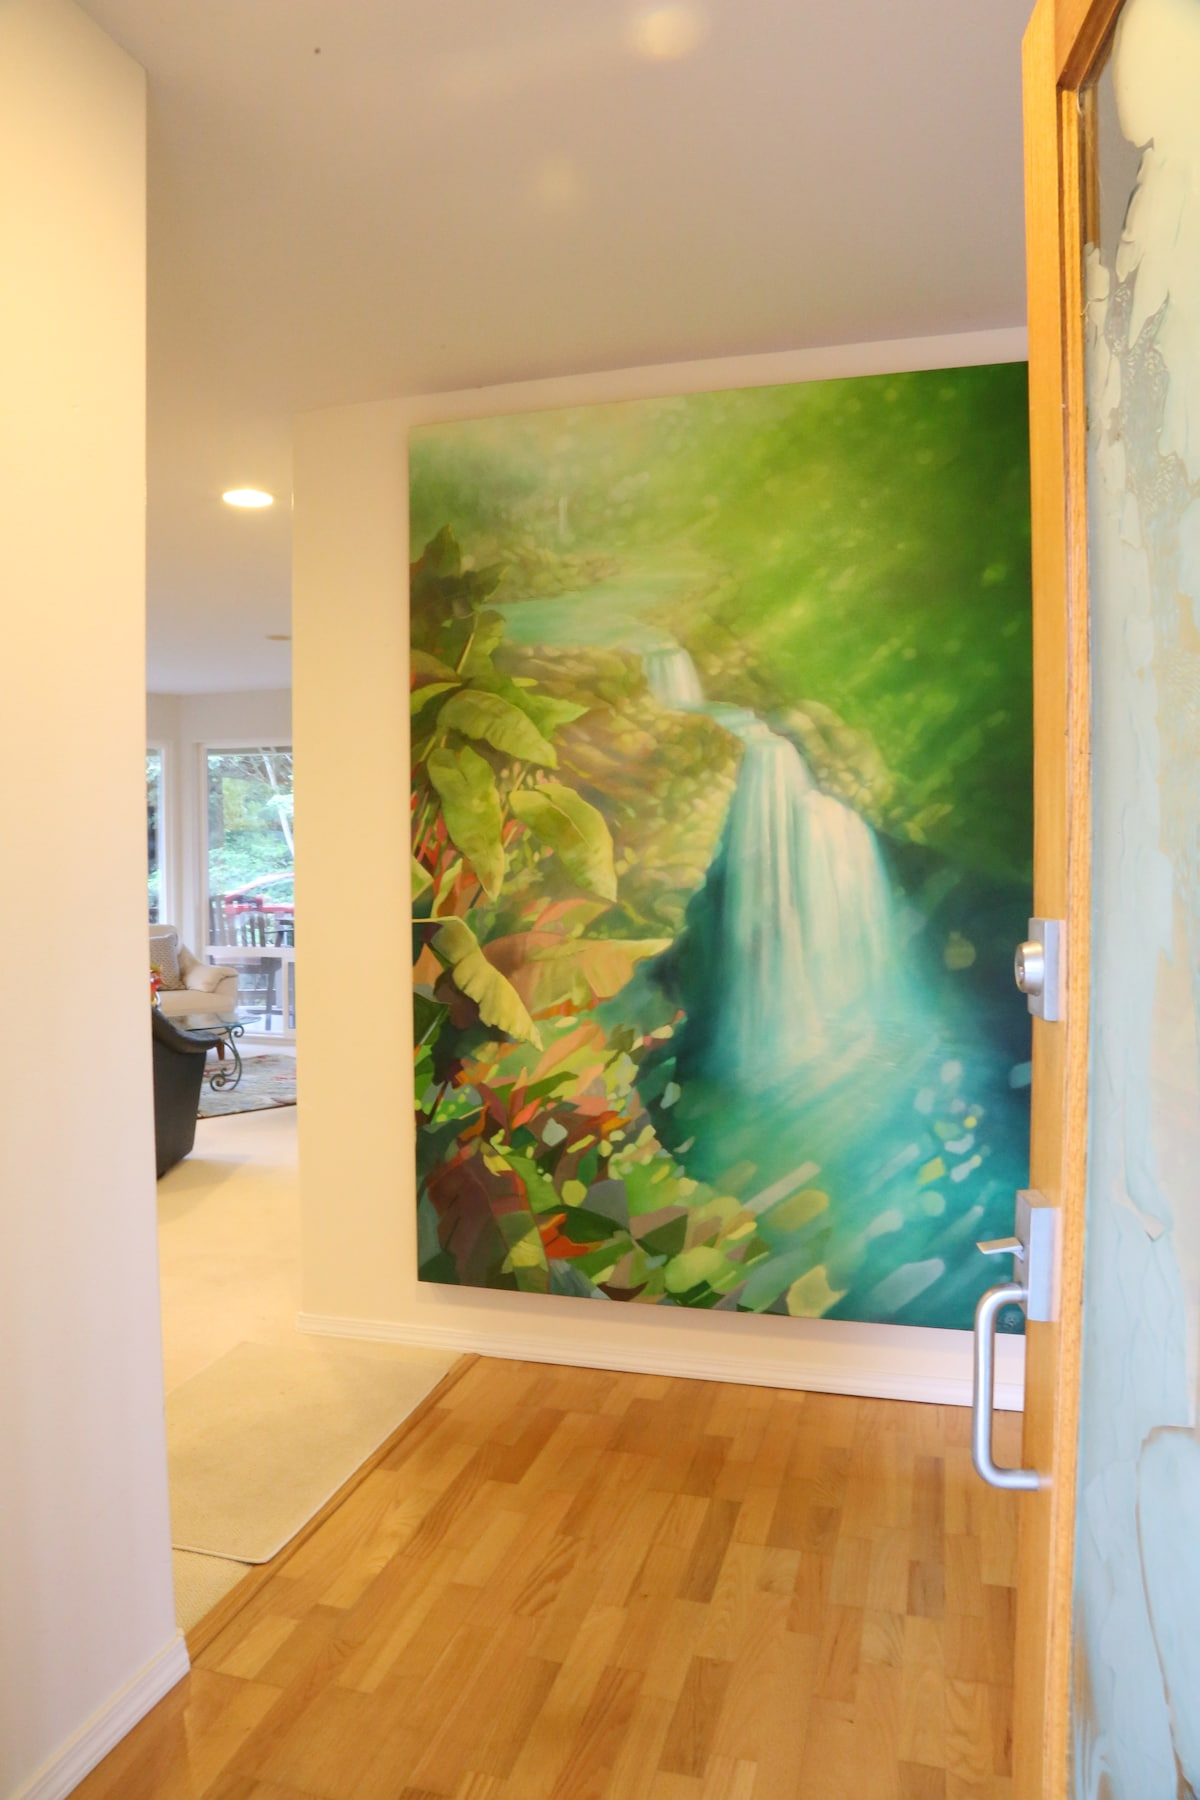 Original oil painting by Kristie Fujiyama Kosmides in the entry.